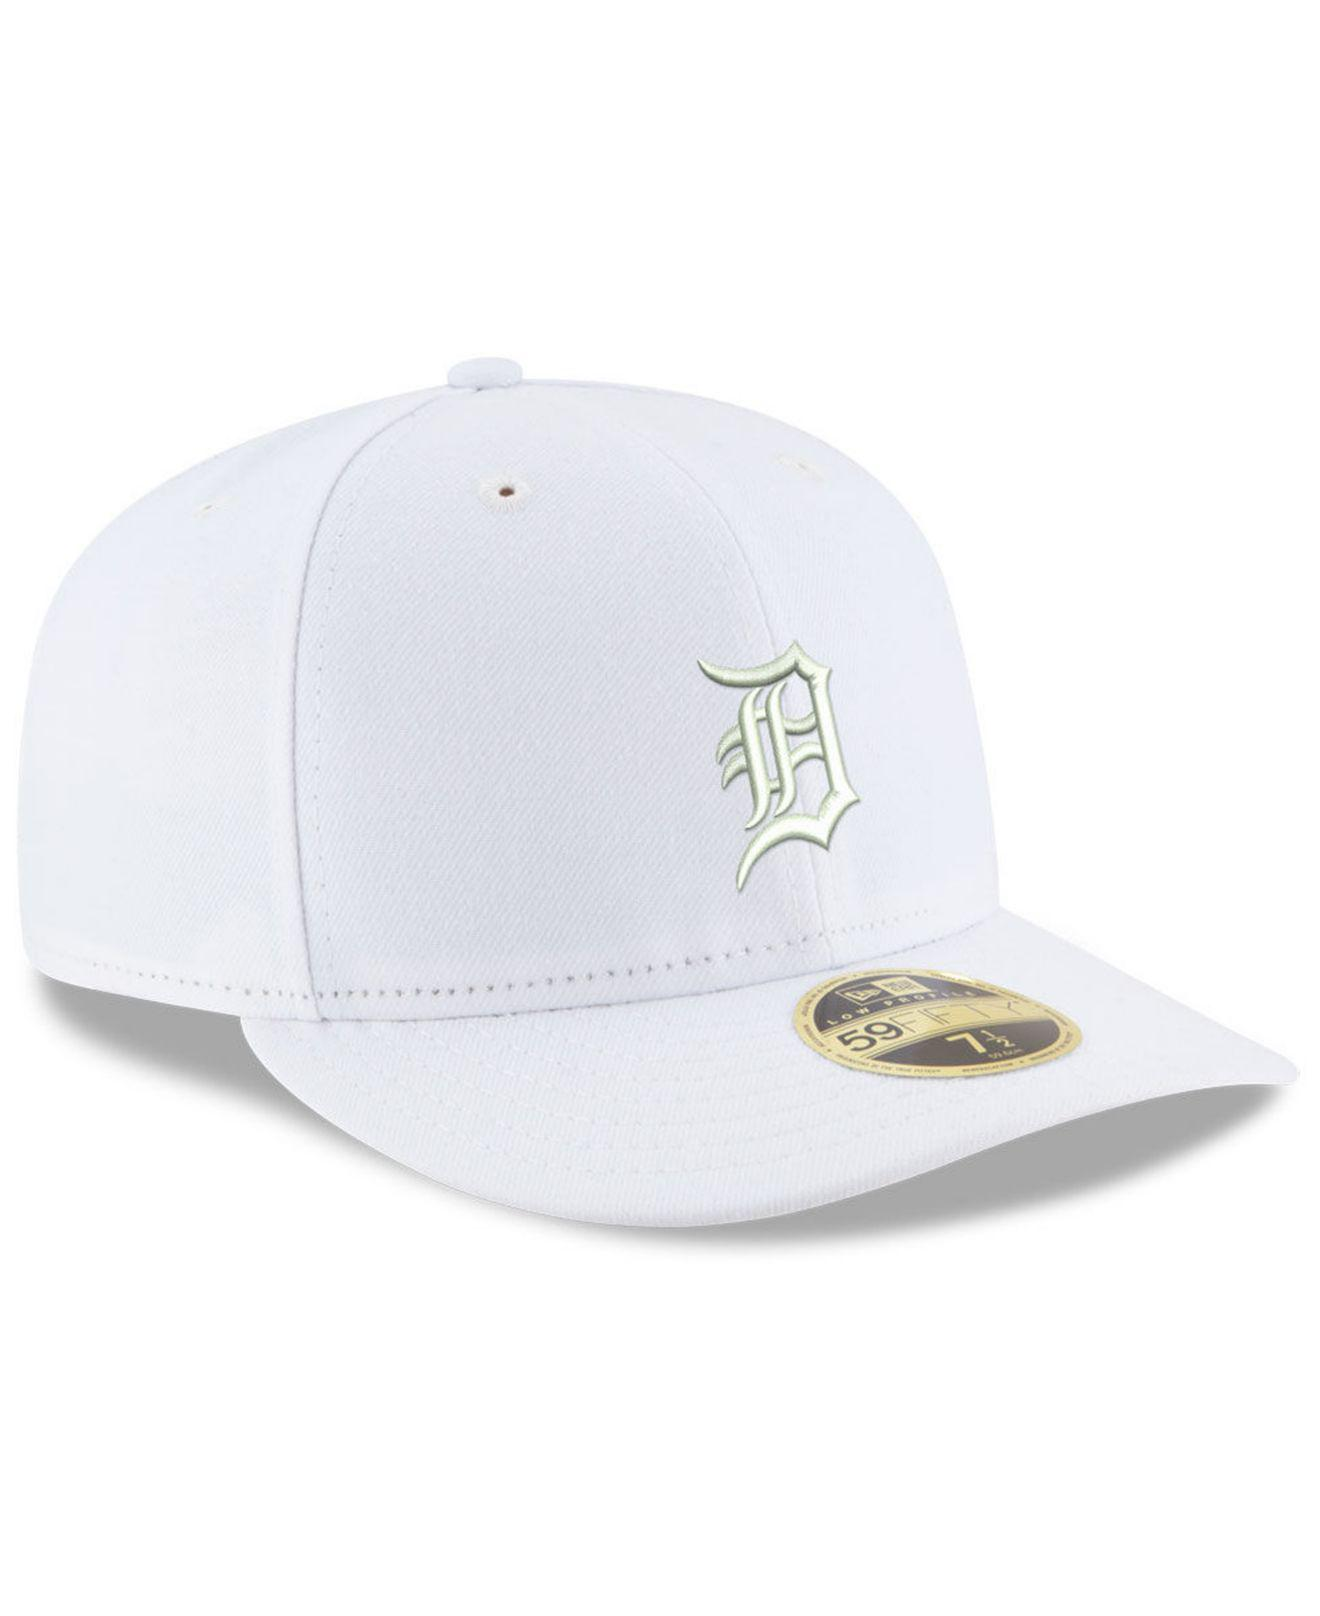 reputable site b1bb8 02113 KTZ Detroit Tigers Triple White Low Profile 59fifty Fitted Cap in ...